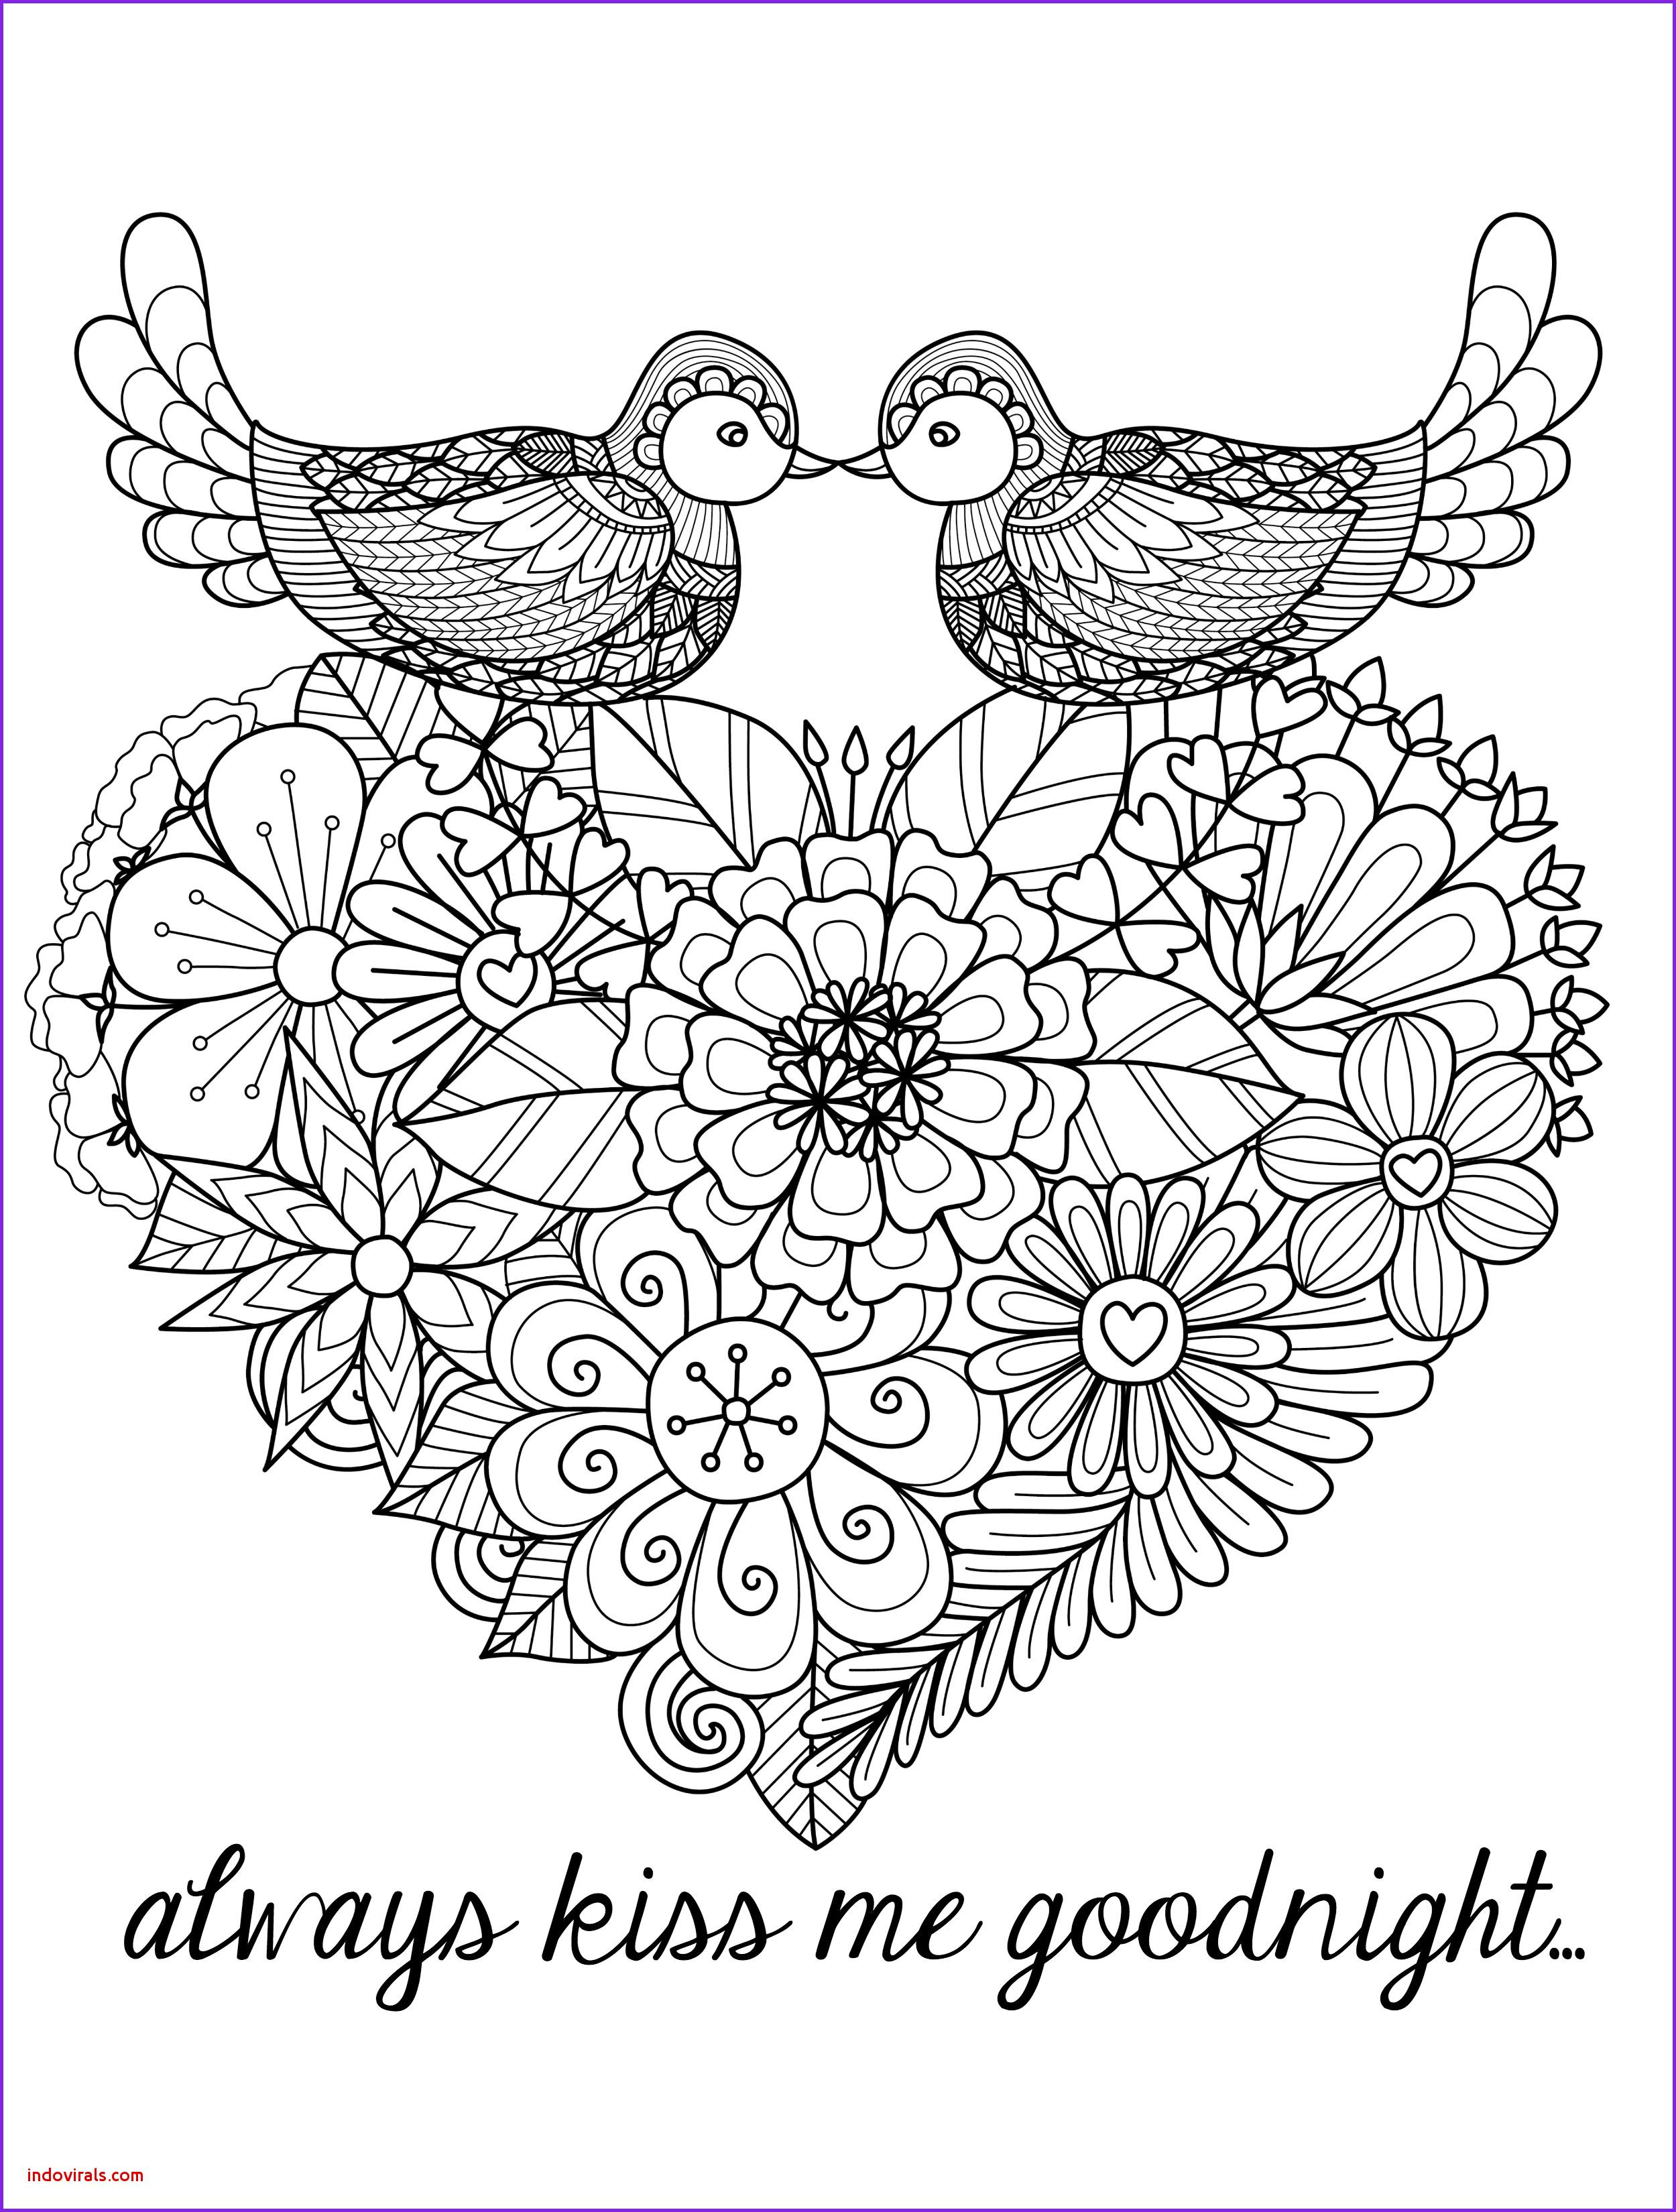 Valentines Day Coloring Pages For Adults Lovely Valentines Day Coloring Pages For Adults Concept Coloring Page